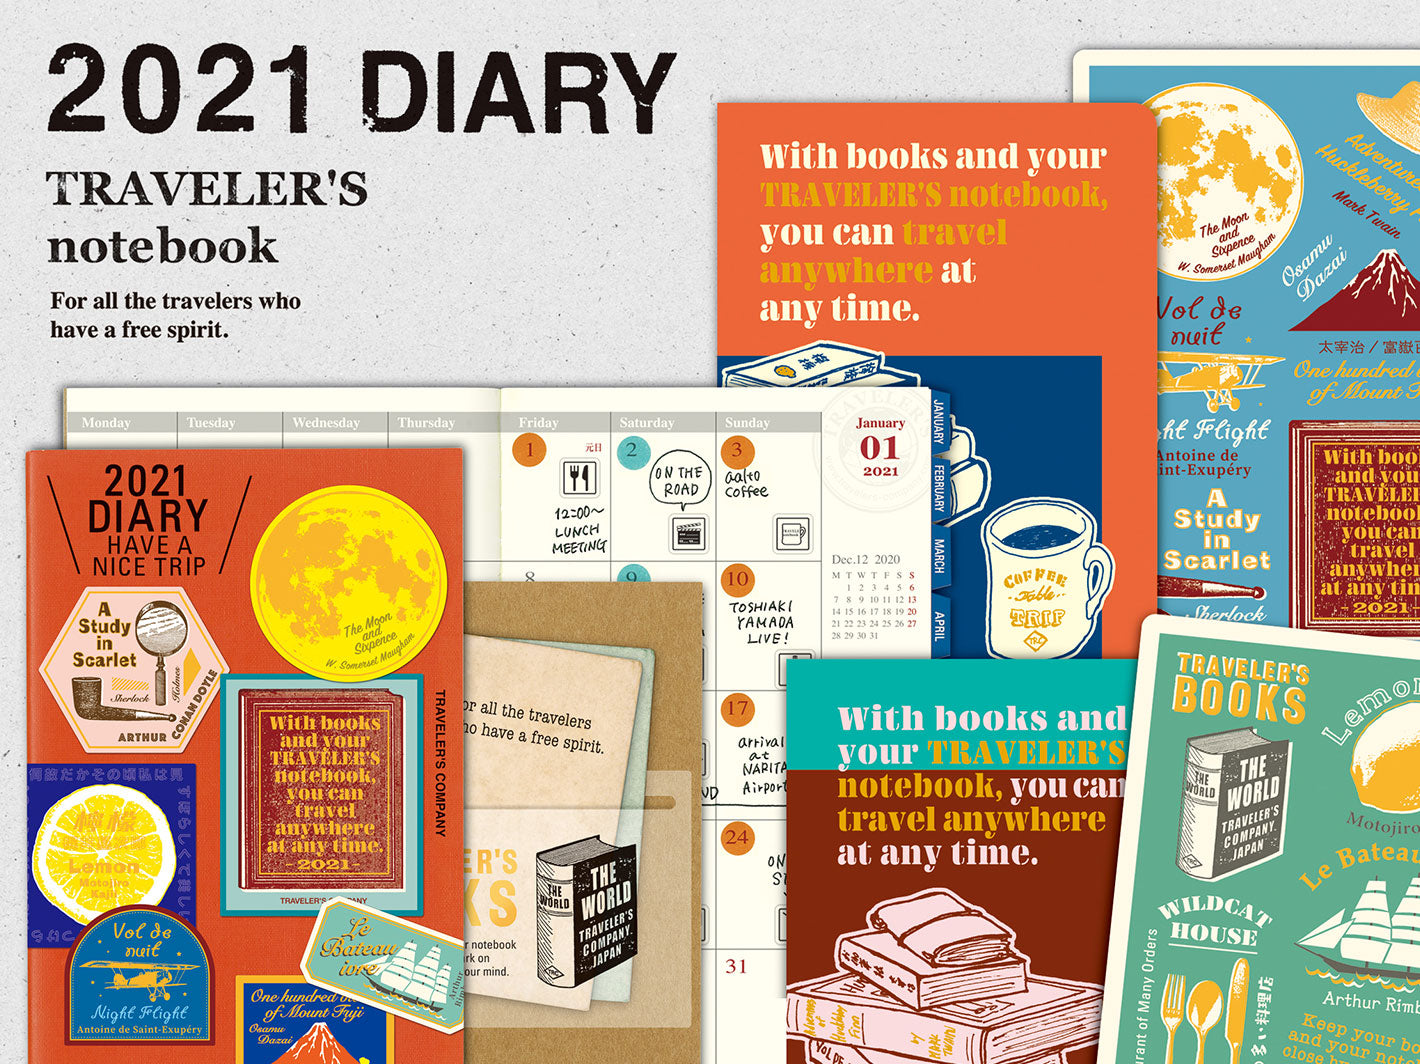 2021 Weekly Diary Passport Size TRAVELER'S